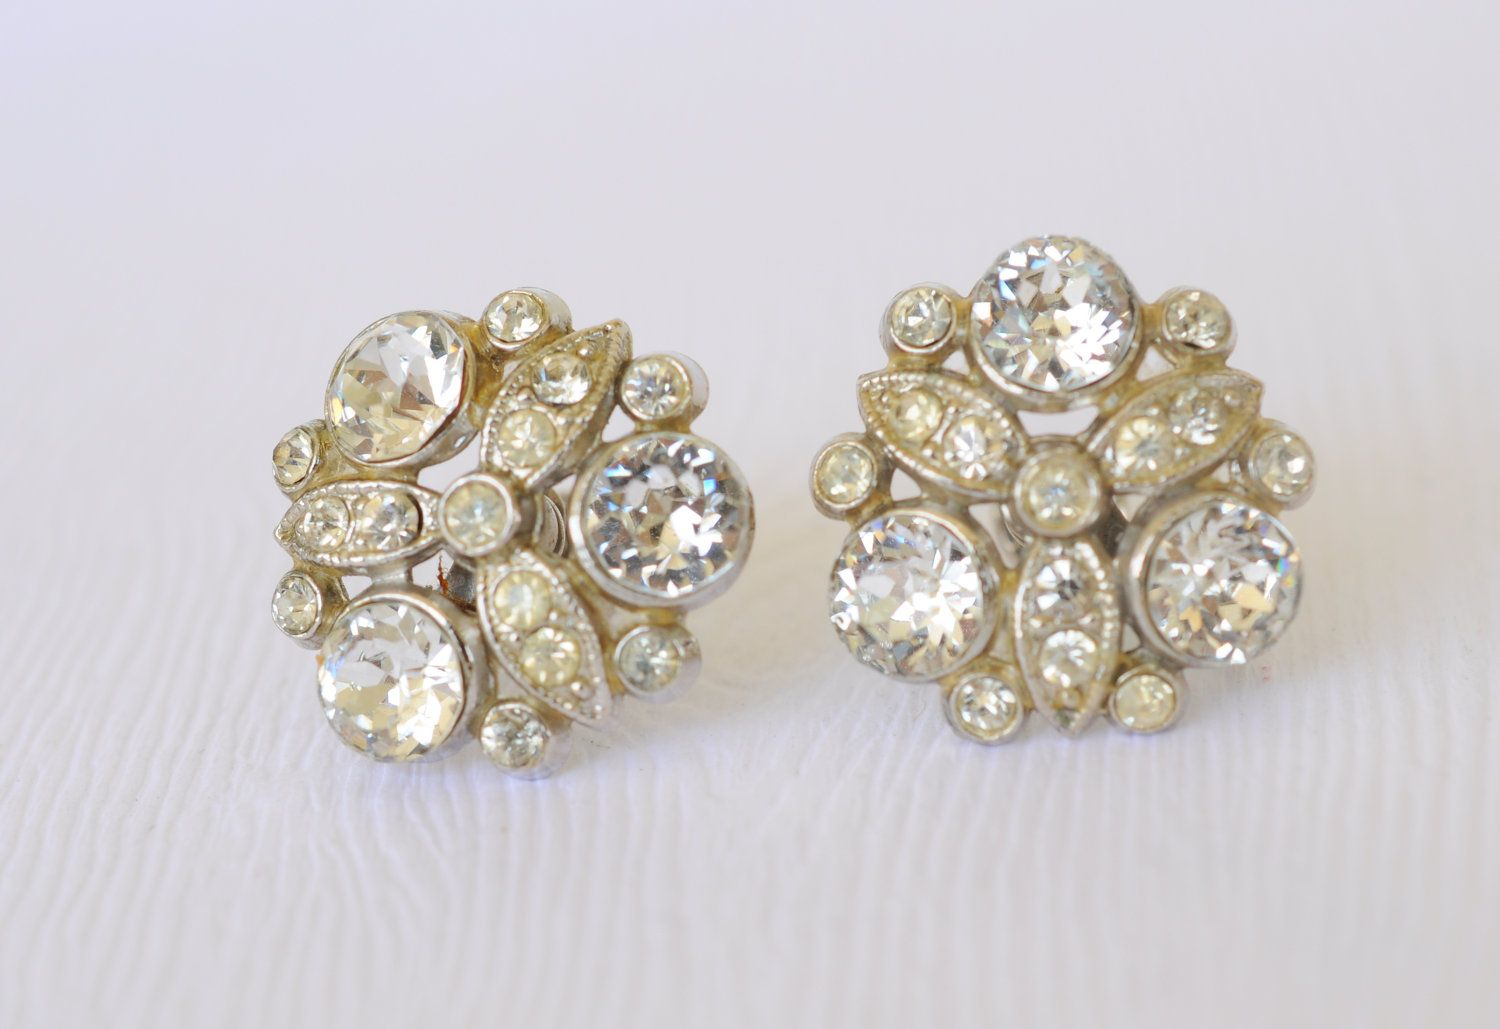 1930s vintage / NEMO rhinestone earrings // SPARKLE. $38.00, via Etsy.